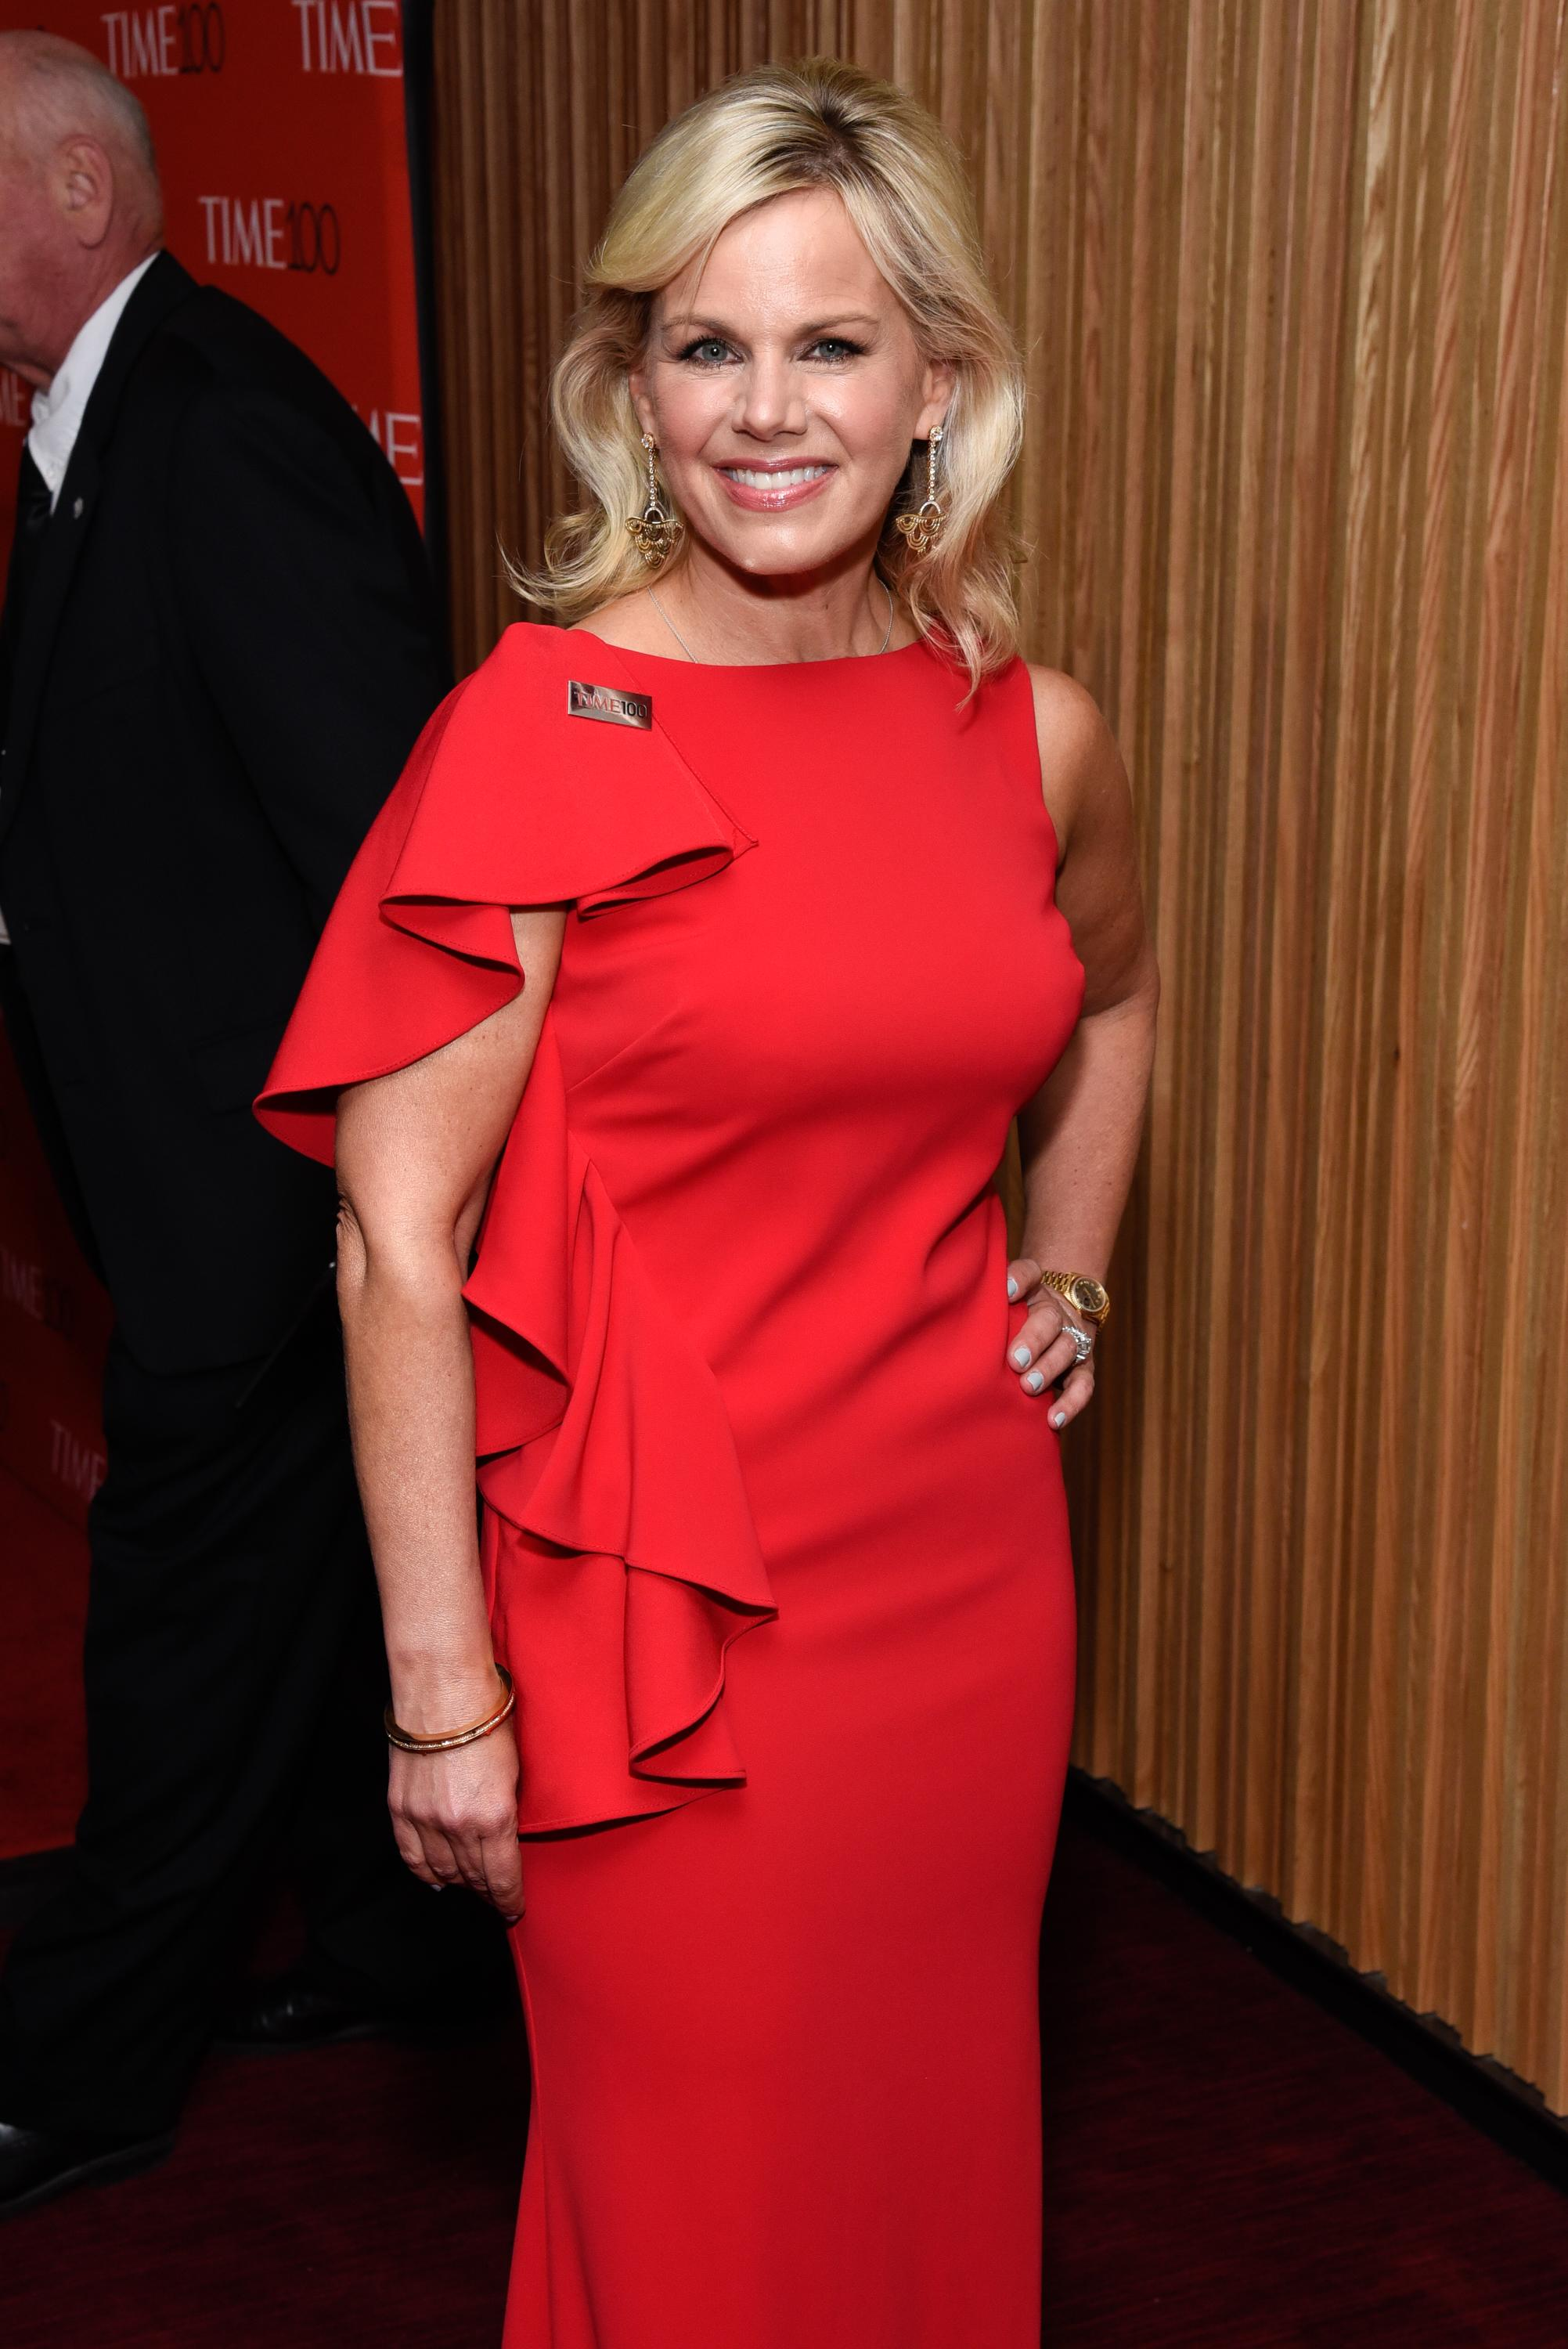 Gretchen Carlson Named New Chair of Miss America